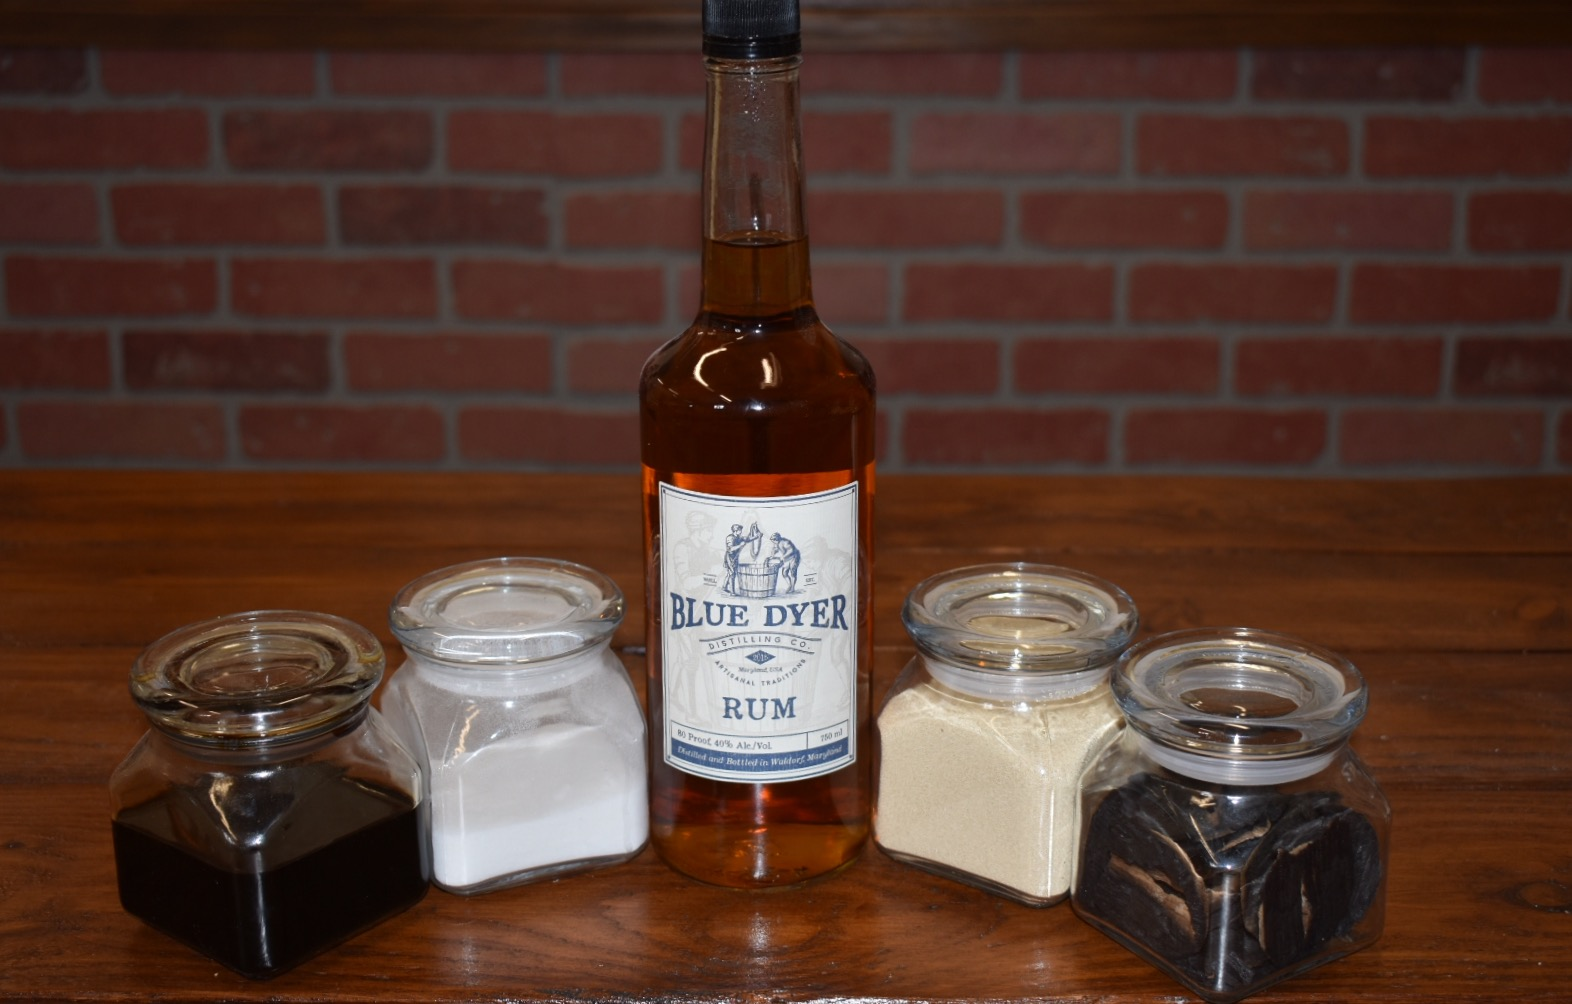 "Based on an old family recipe....BlueDyer Distilling Co. ""Original Gold"" Rum is handcrafted from top quality Molasses, Pure Cane Sugar, Distilled four times and finished in High Char Oak Barrels. Awarded ADI Annual Judging of Craft Spirits Silver Medal in 2017, our flagship product is best enjoyed neat, on ice or in your favorite Rum based cocktail, and responsibly. Cheers!!"